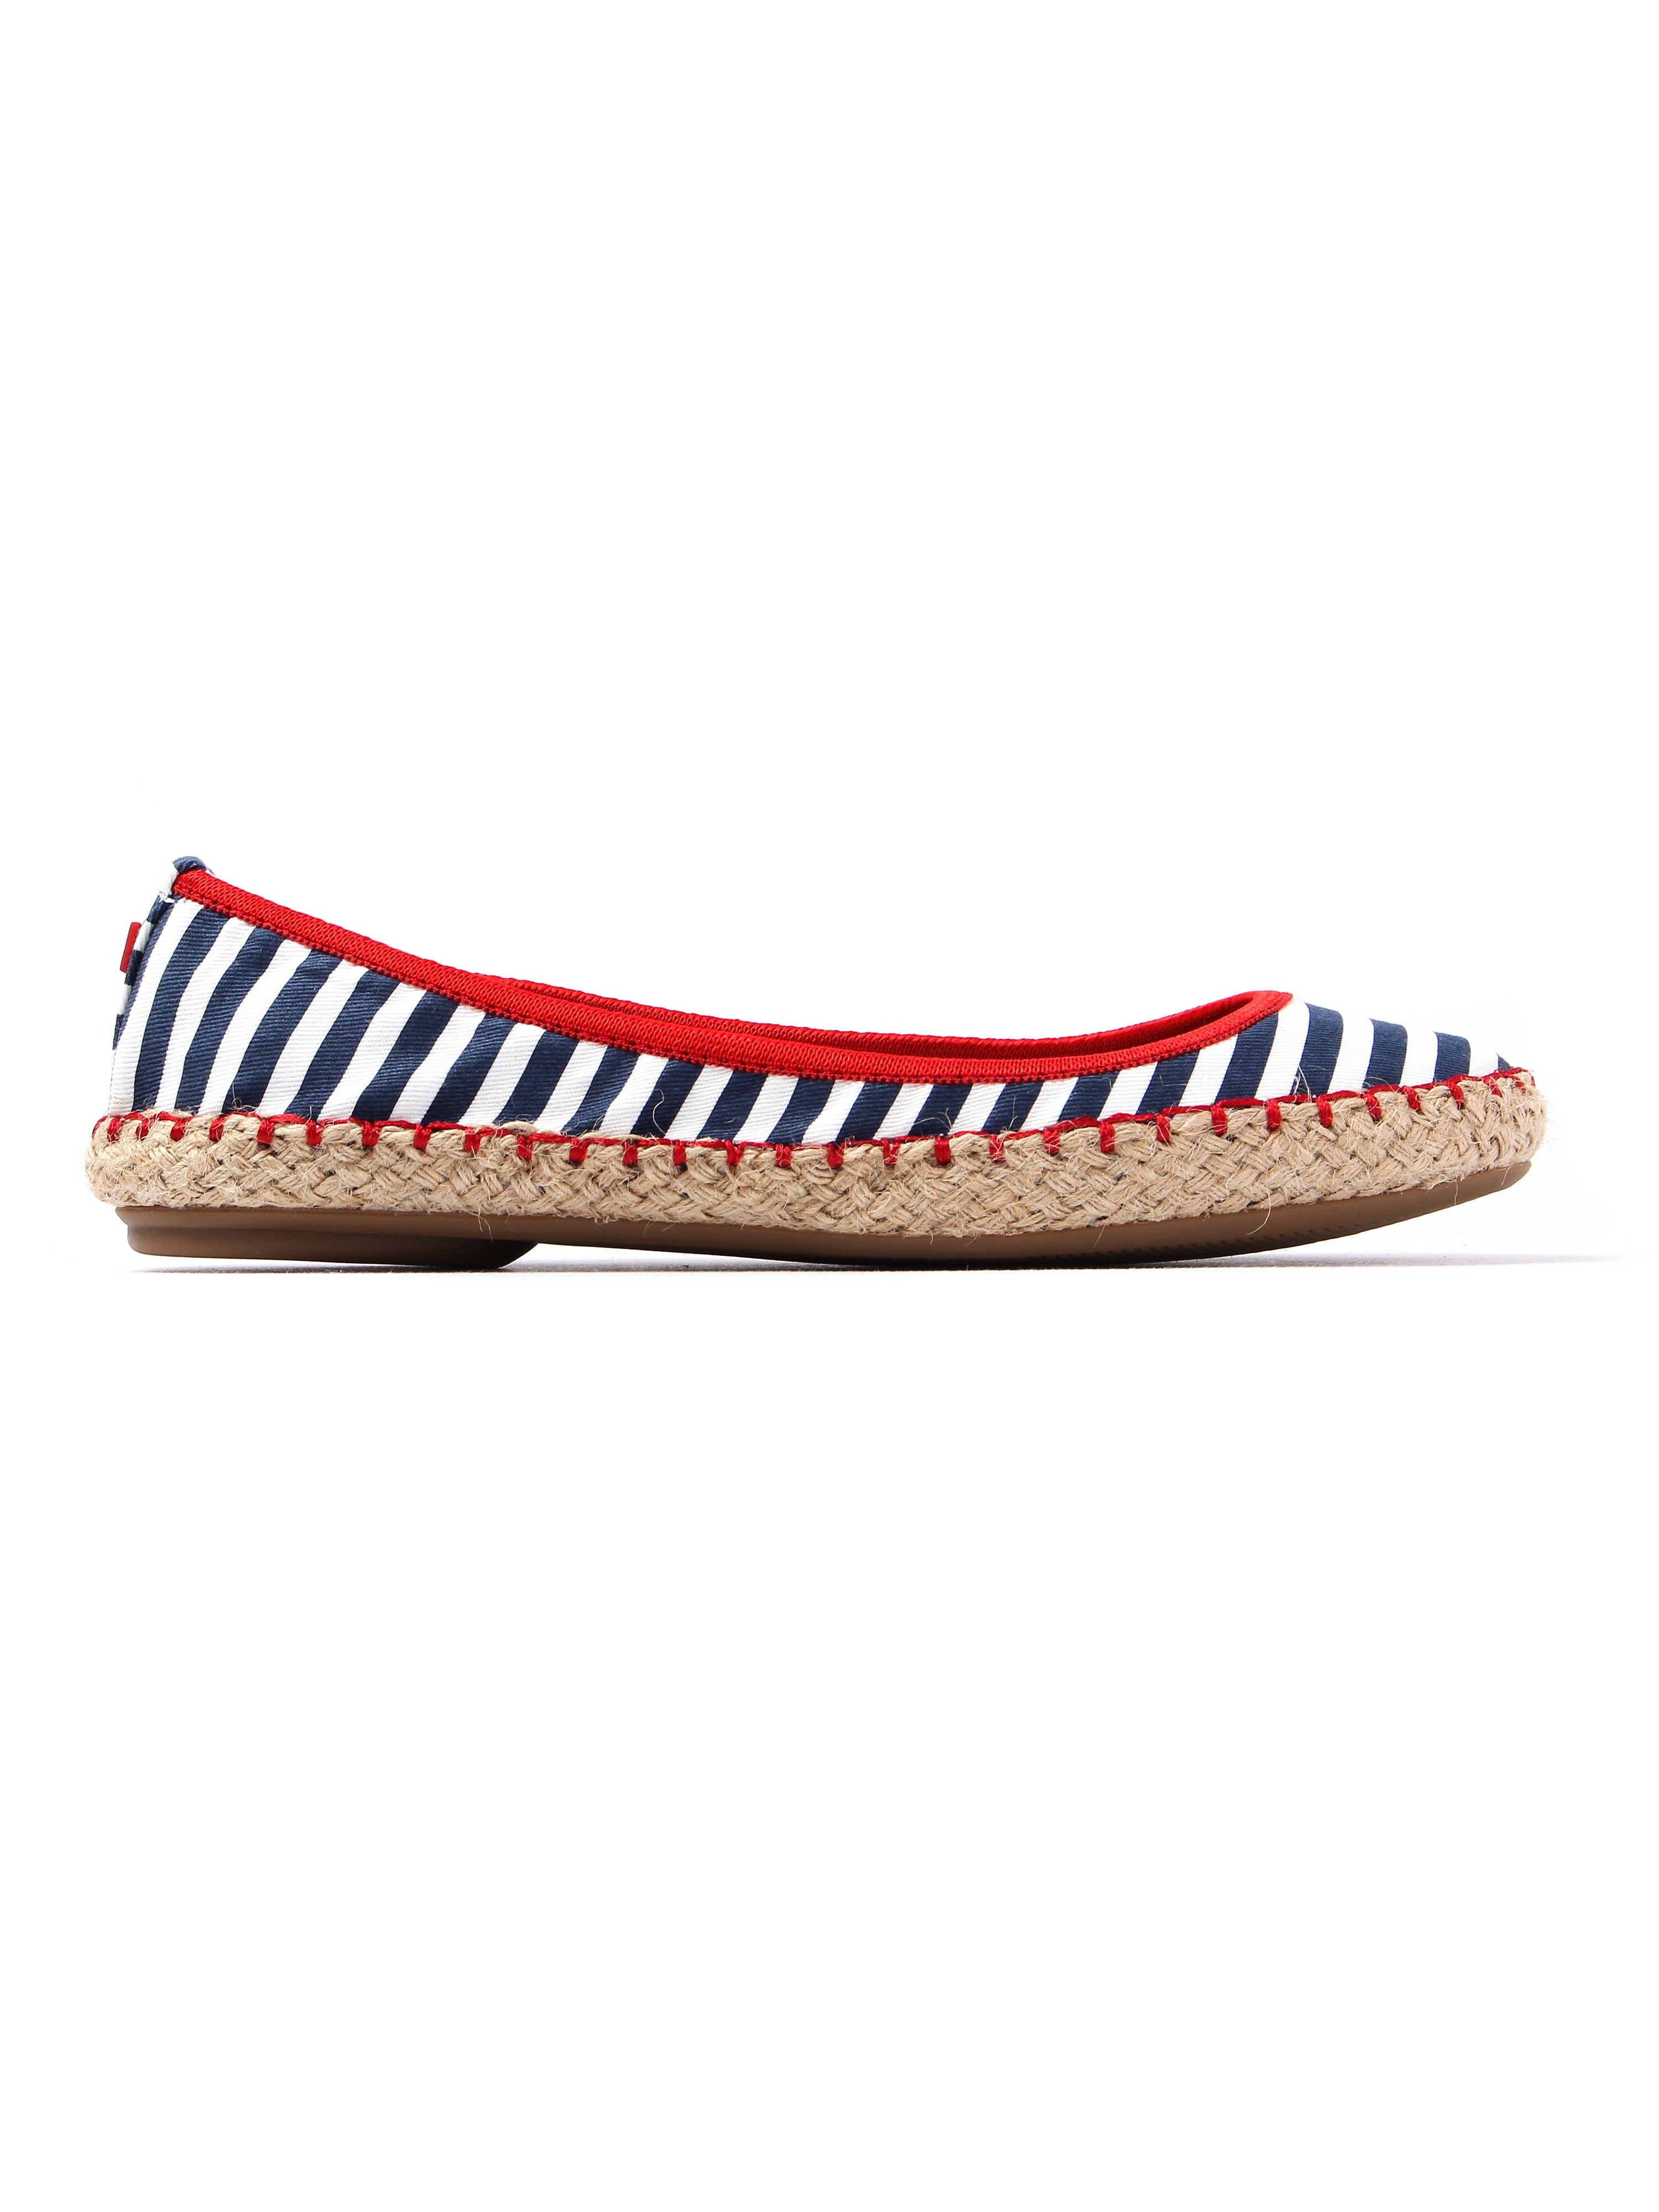 Butterfly Twists Women's Gigi Striped Foldable Ballerina Pumps - Navy & White